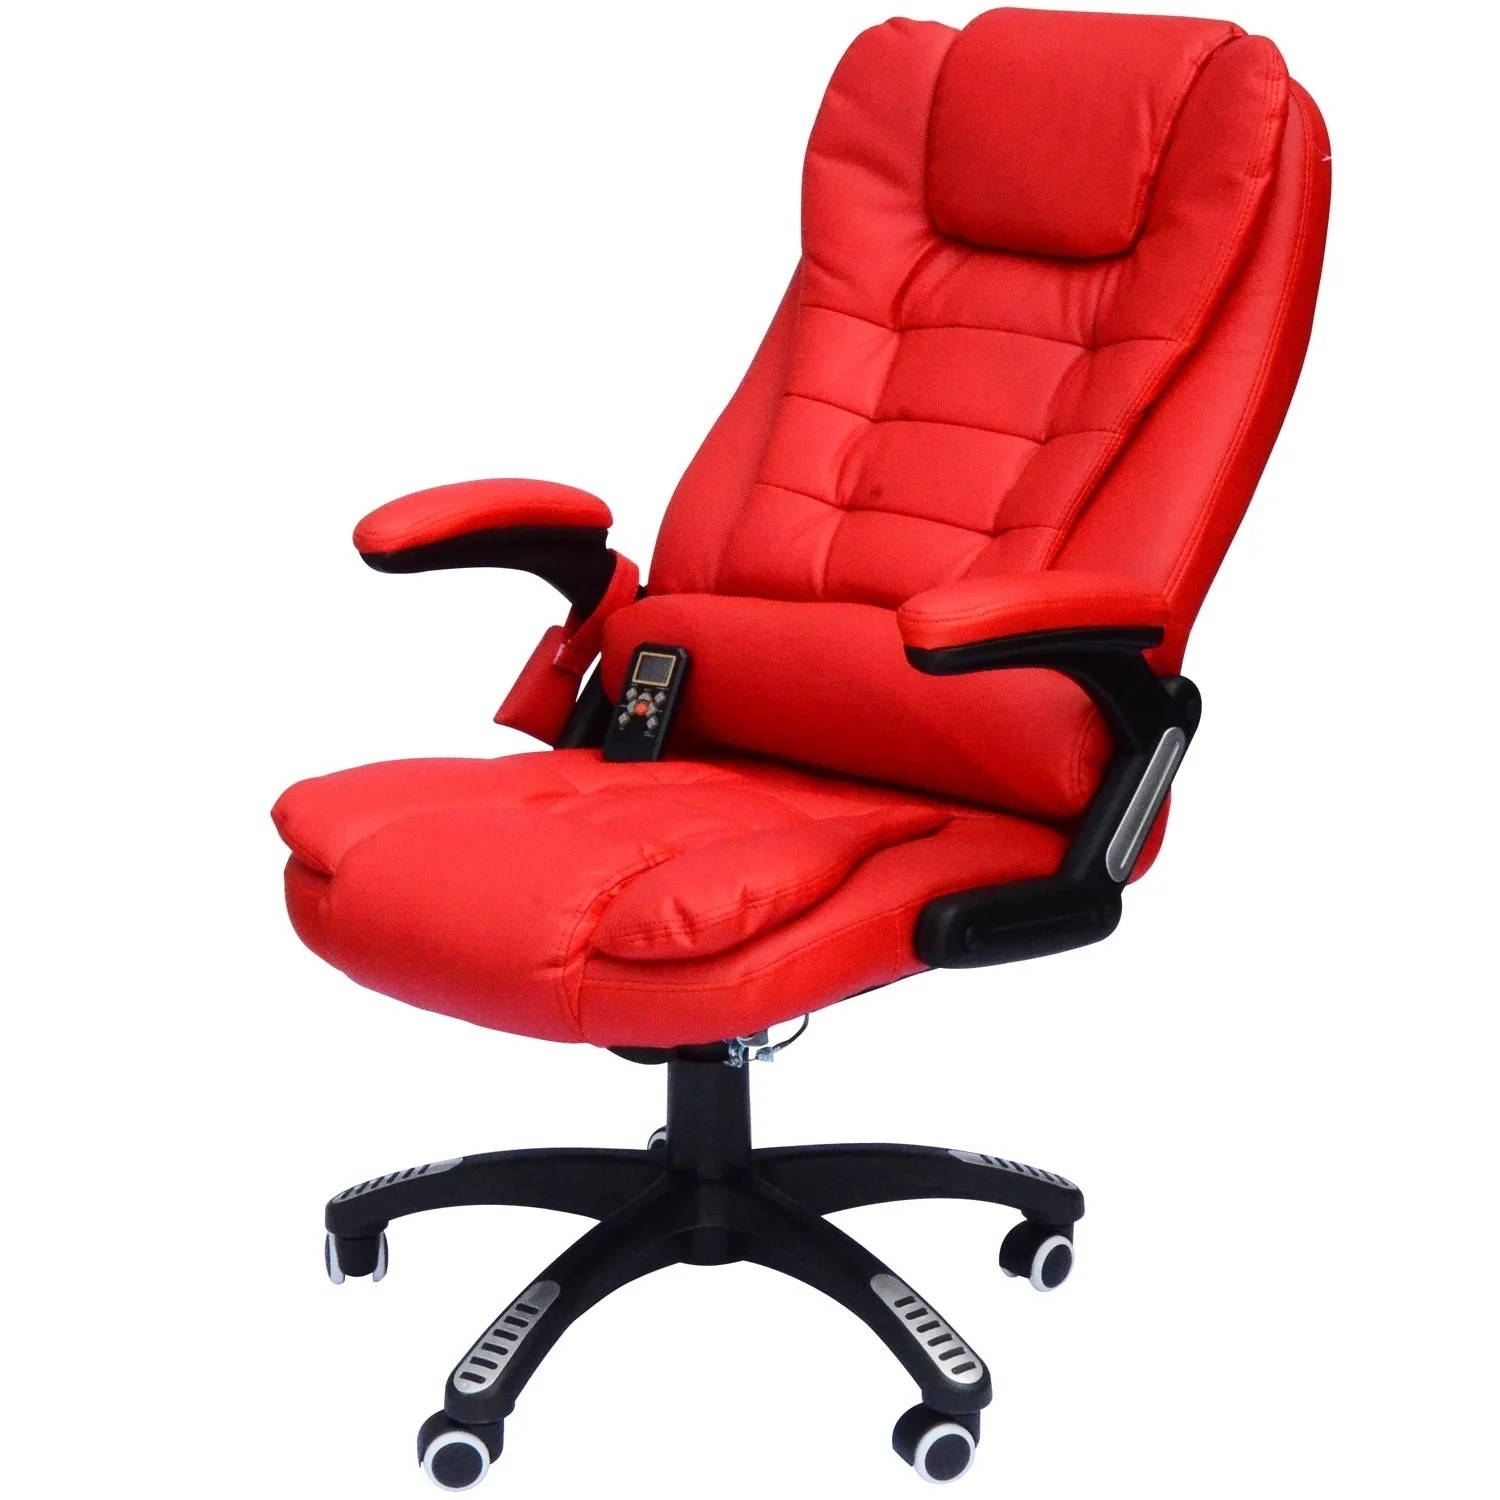 Massage Office Chair Homcom High Back Executive Ergonomic Pu Leather Heated Vibrating Massage Office Chair Red